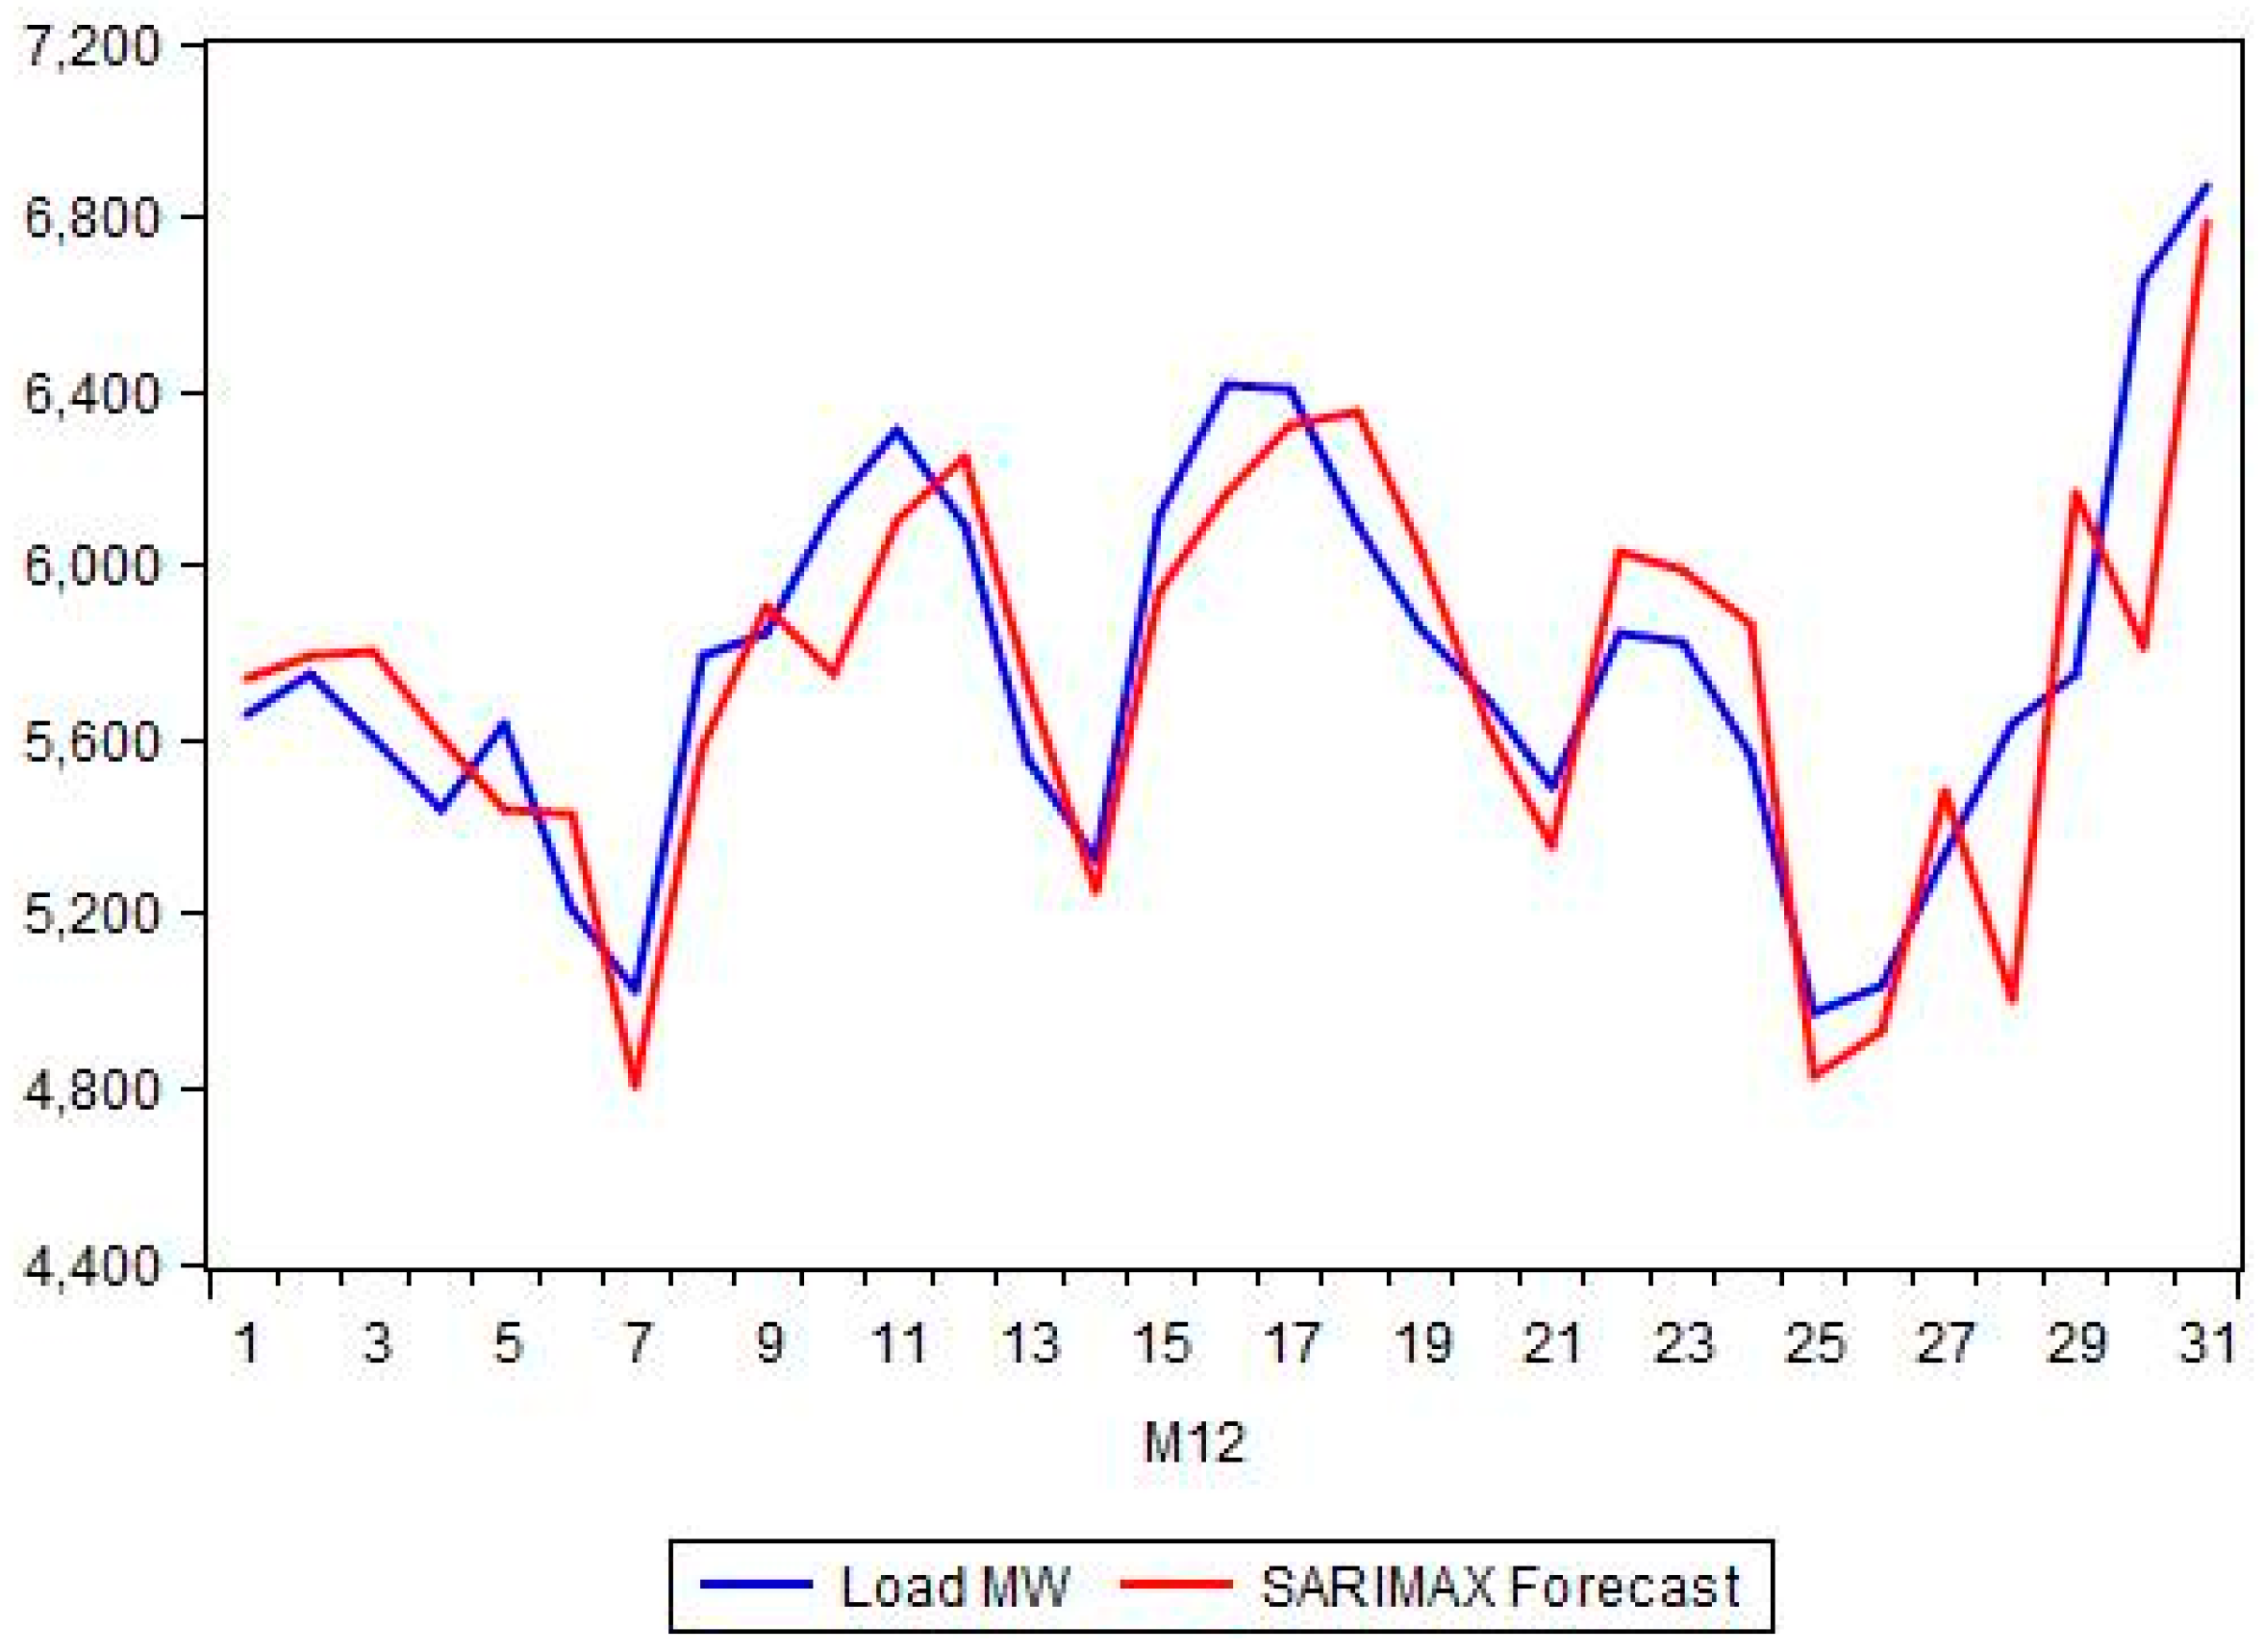 short term load forecasting using ann thesis International journal of computer applications (0975 – 8887) volume 100– no1, august 2014 41 short-term electrical load forecasting for iraqi power.